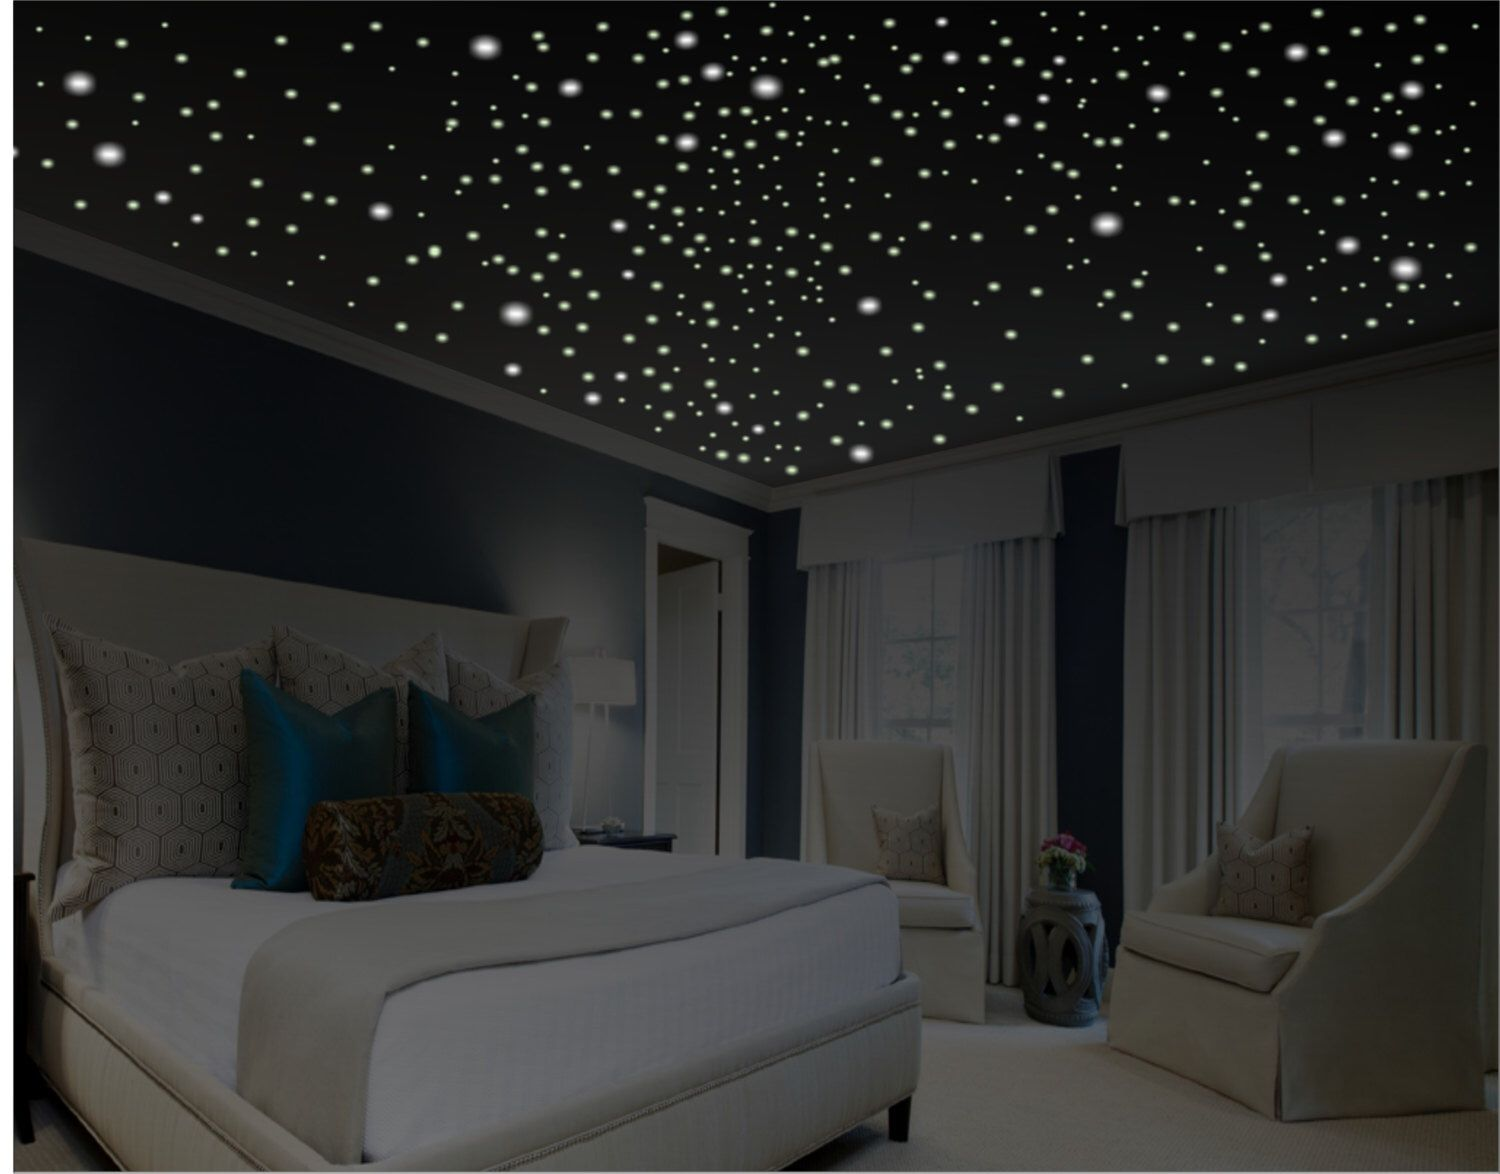 Glow in the dark stars romantic bedroom decor romantic for Bed decoration anniversary